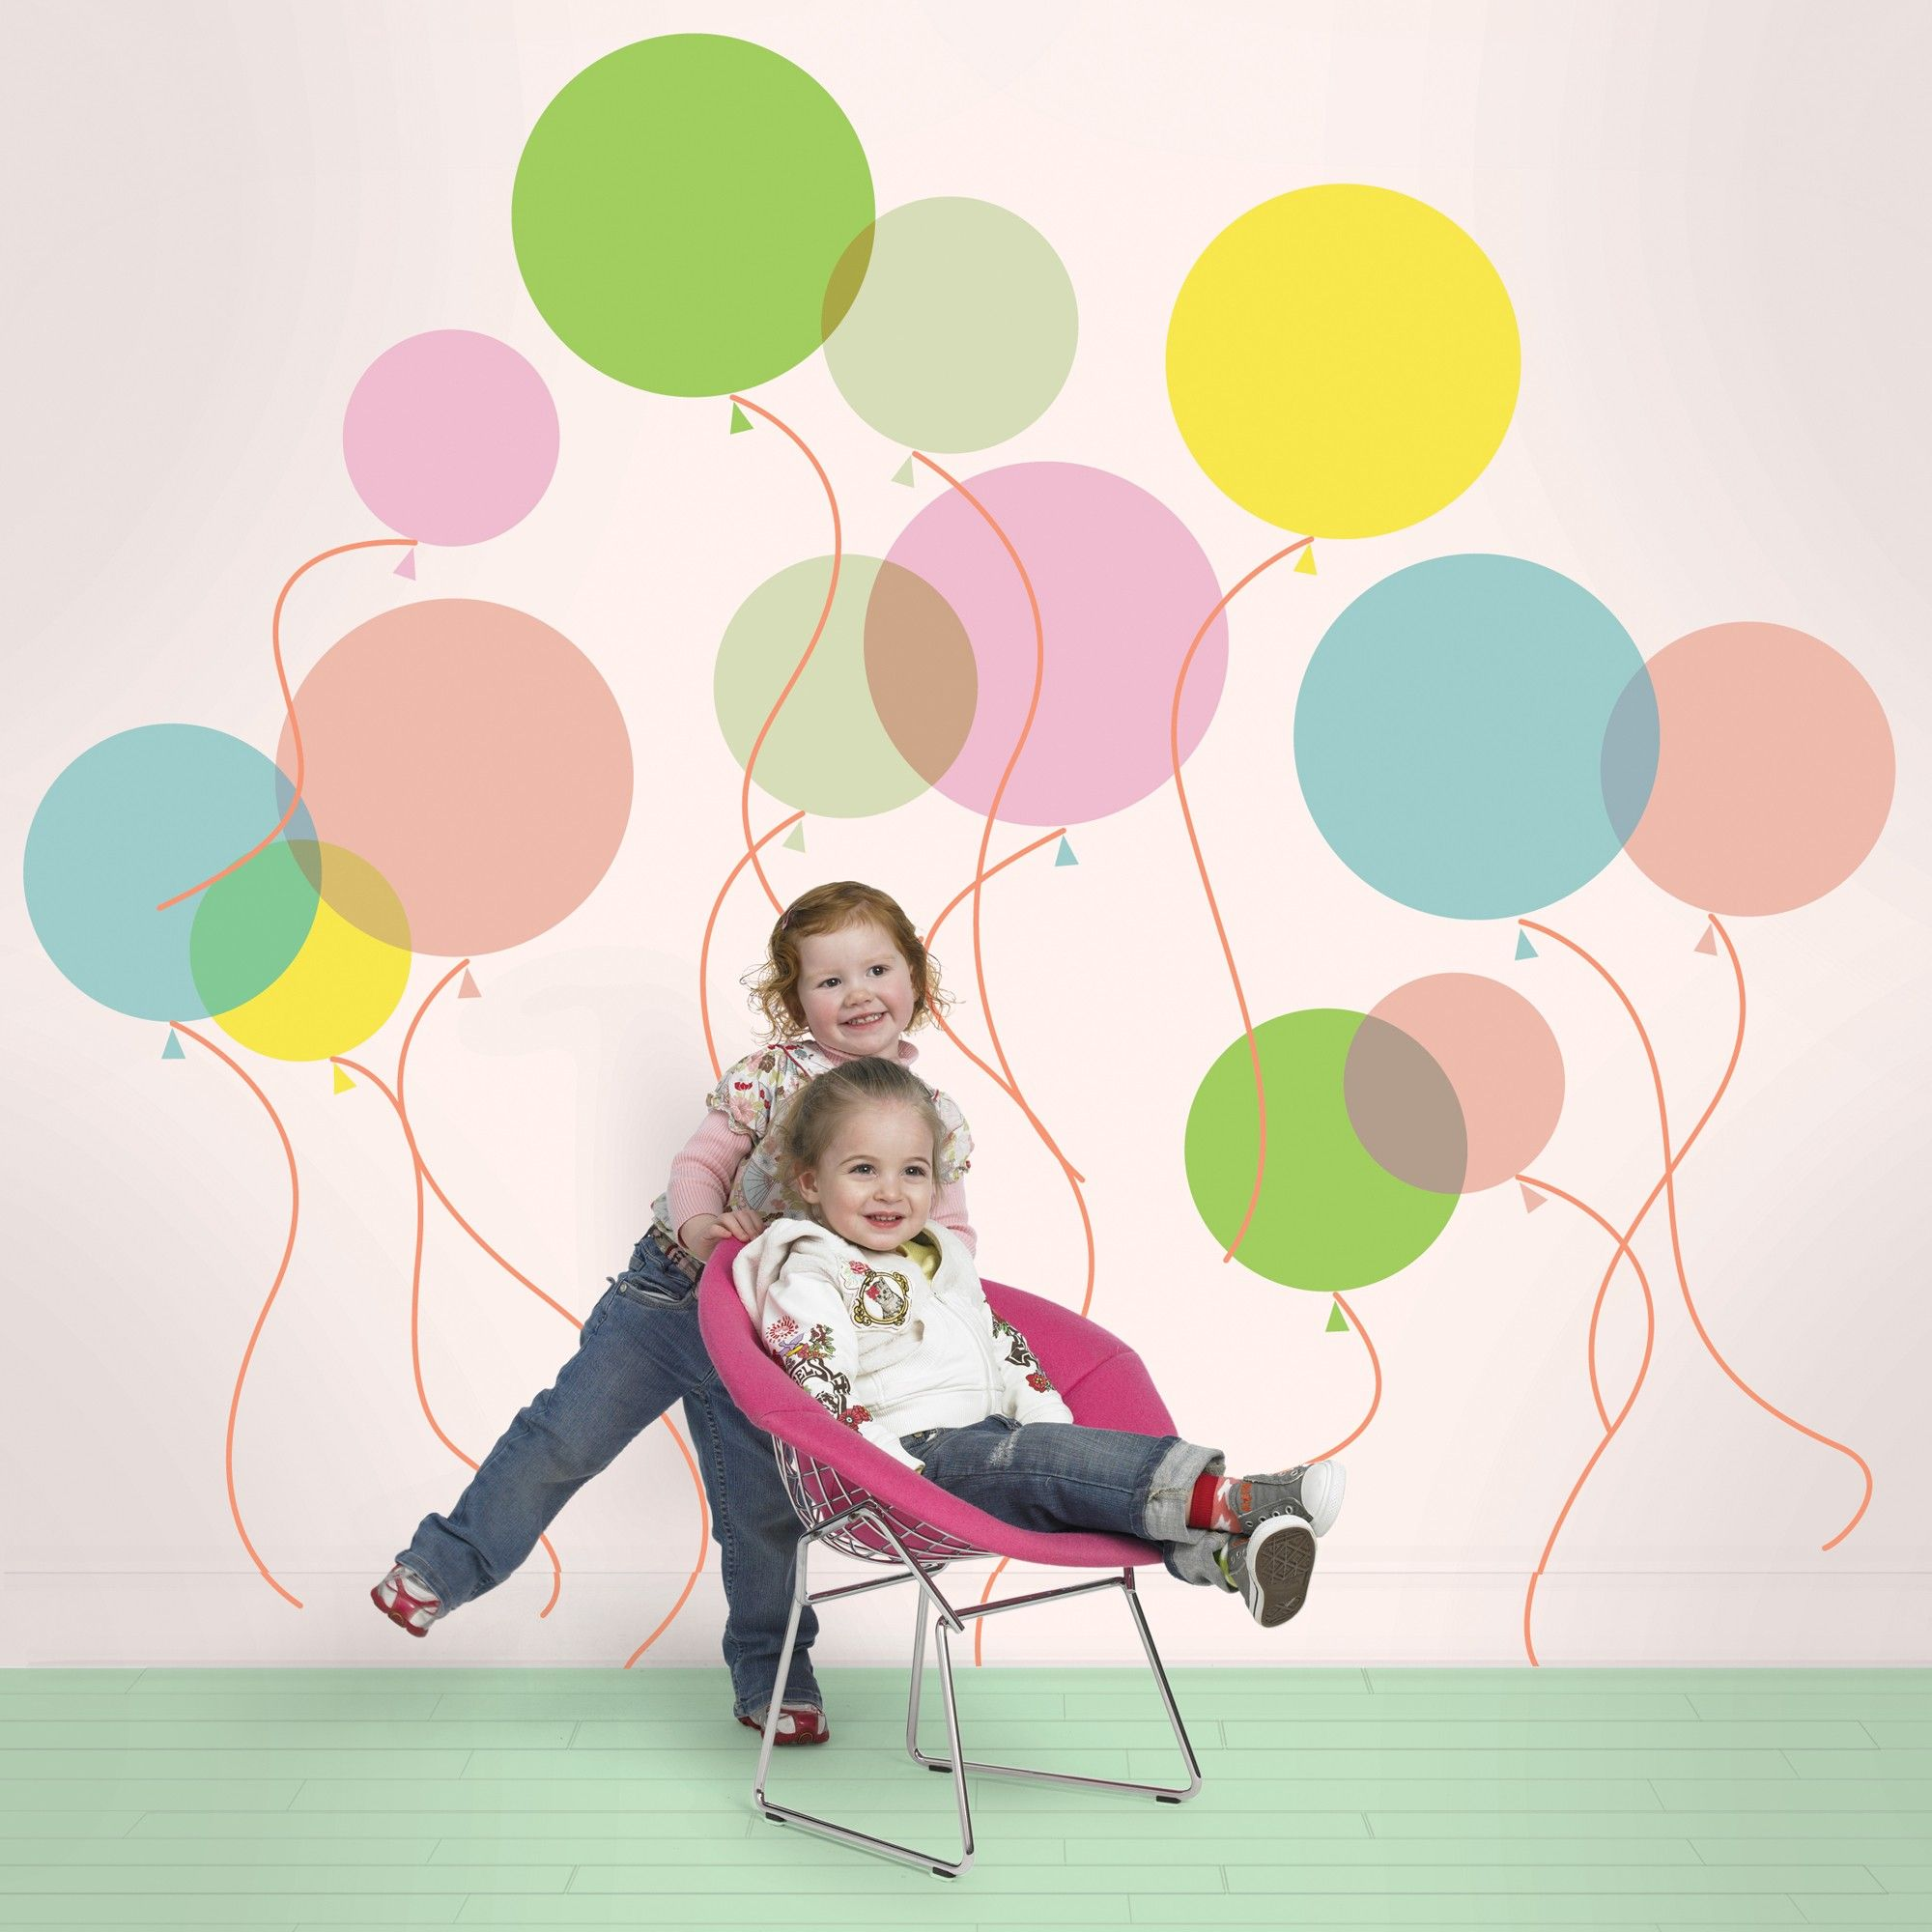 Pastel Balloons Wall Stickers Kids Wall Decals Pastel Balloons Decal Wall Art